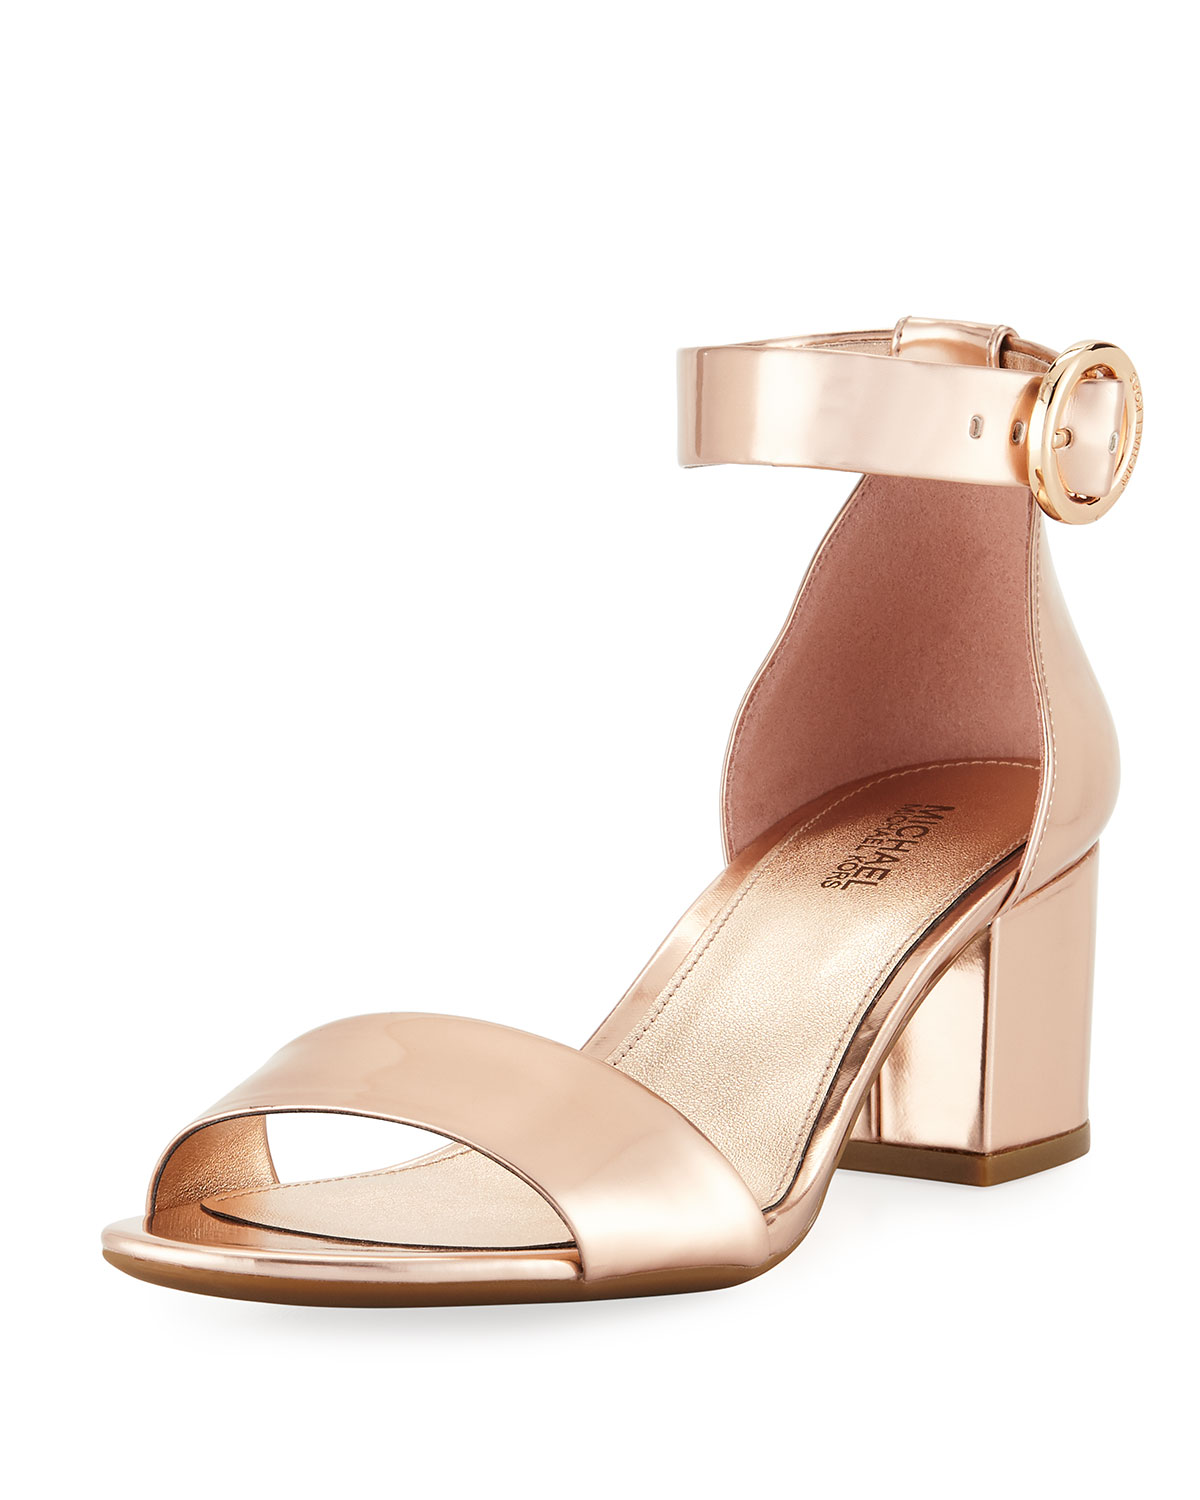 Lena Flex Block Heel Sandals